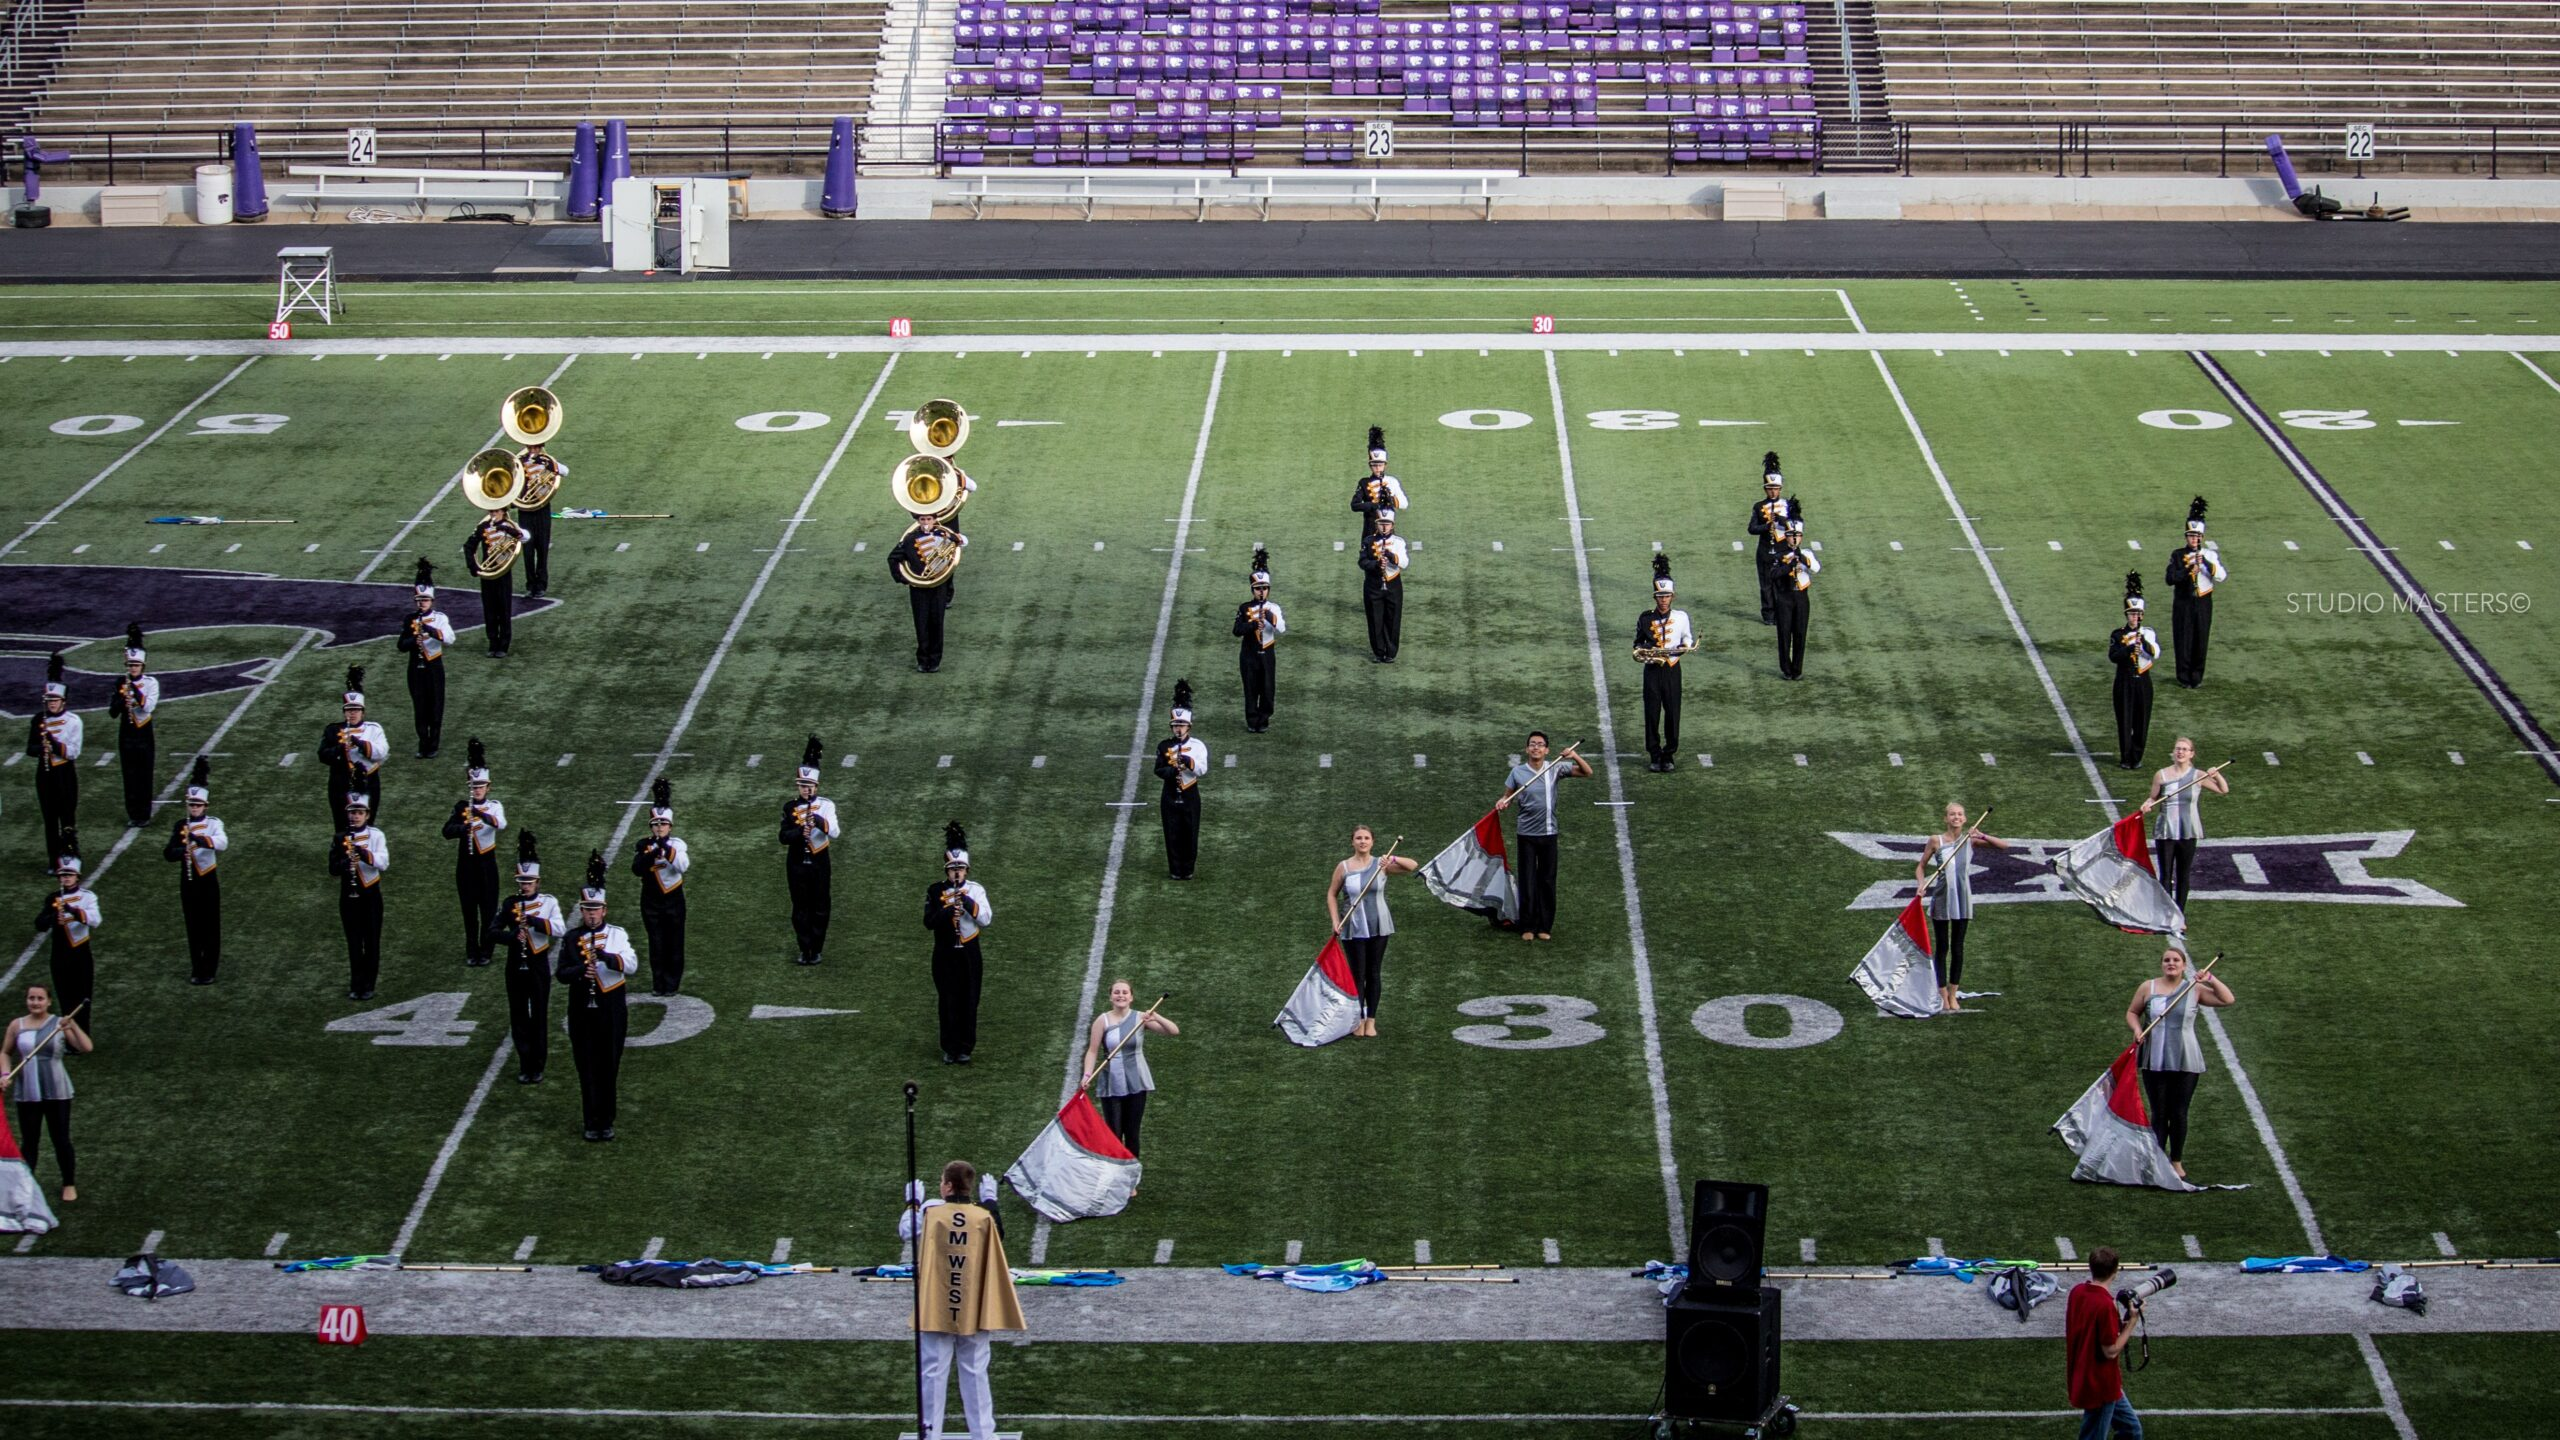 Shawnee Mission West Marching Band at the Central States Marching Festival, 2015, courtesy Angela Masters-Quick